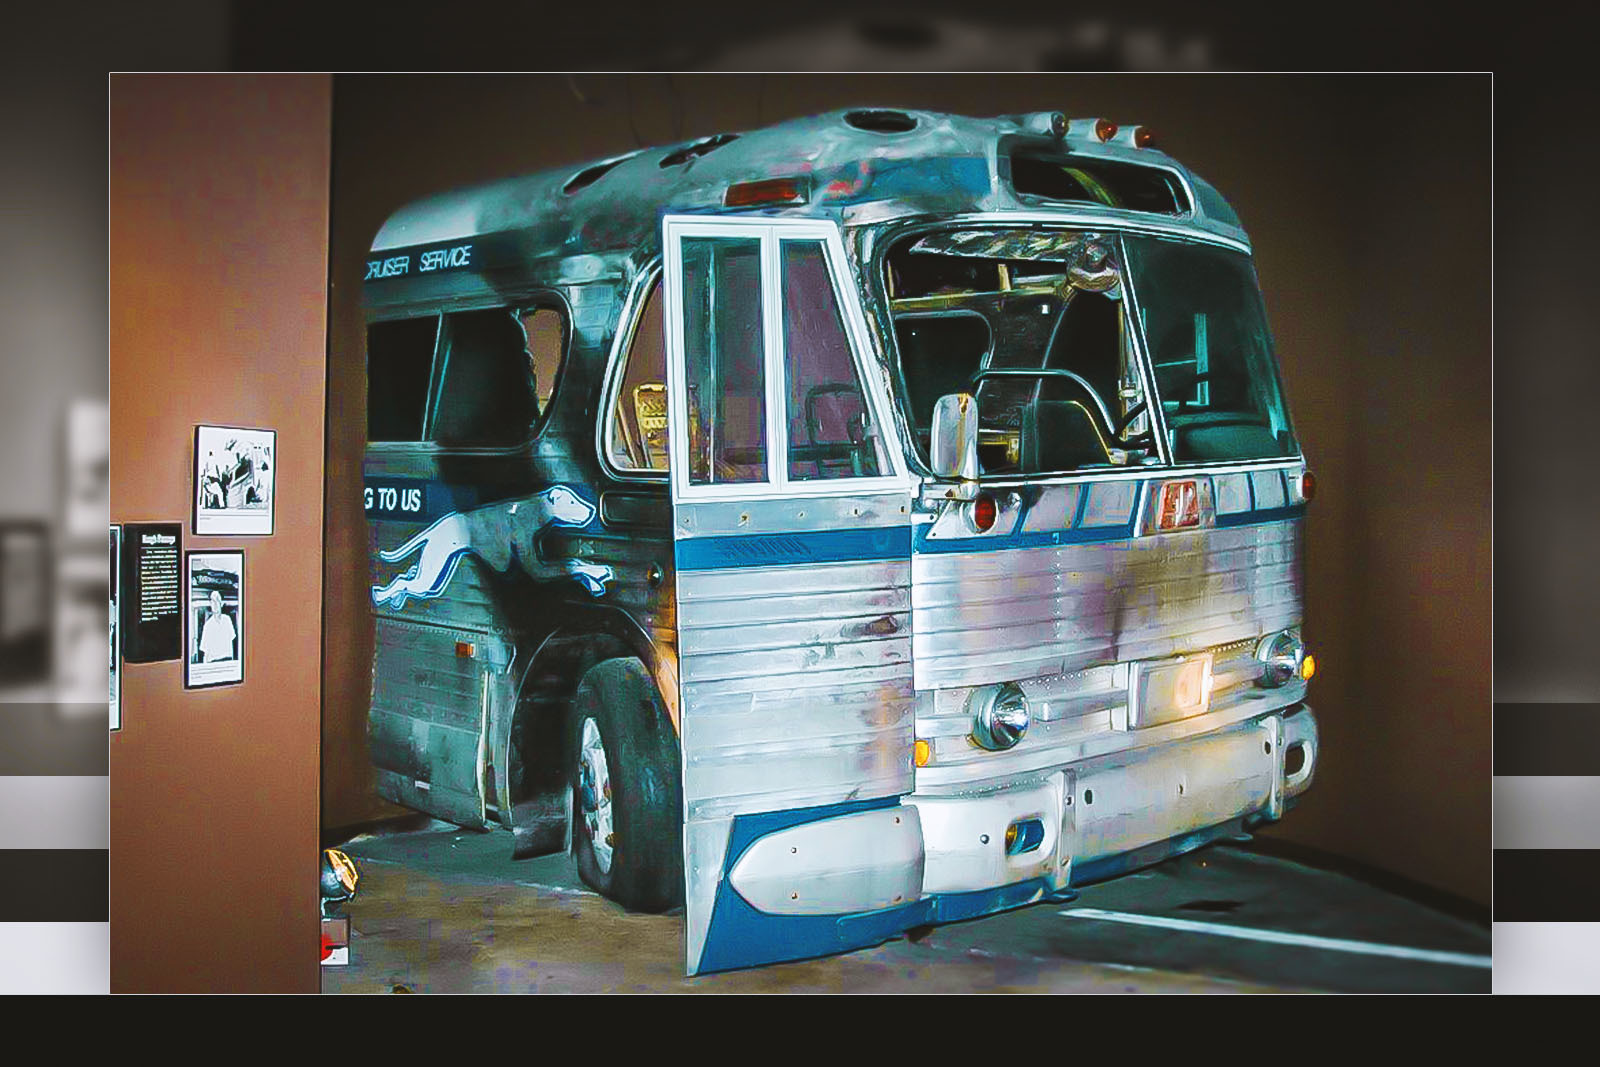 A replica of a Greyhound bus is part of an exhibit at the BCRI that educates visitors about the 1961 attack on Freedom Riders in Anniston, Alabama. The bus was firebombed while it was carrying an interracial group of people who were challenging segregation laws. The attack raised awareness of social injustices and prompted federal lawmakers to pass new regulations banning segregated travel.